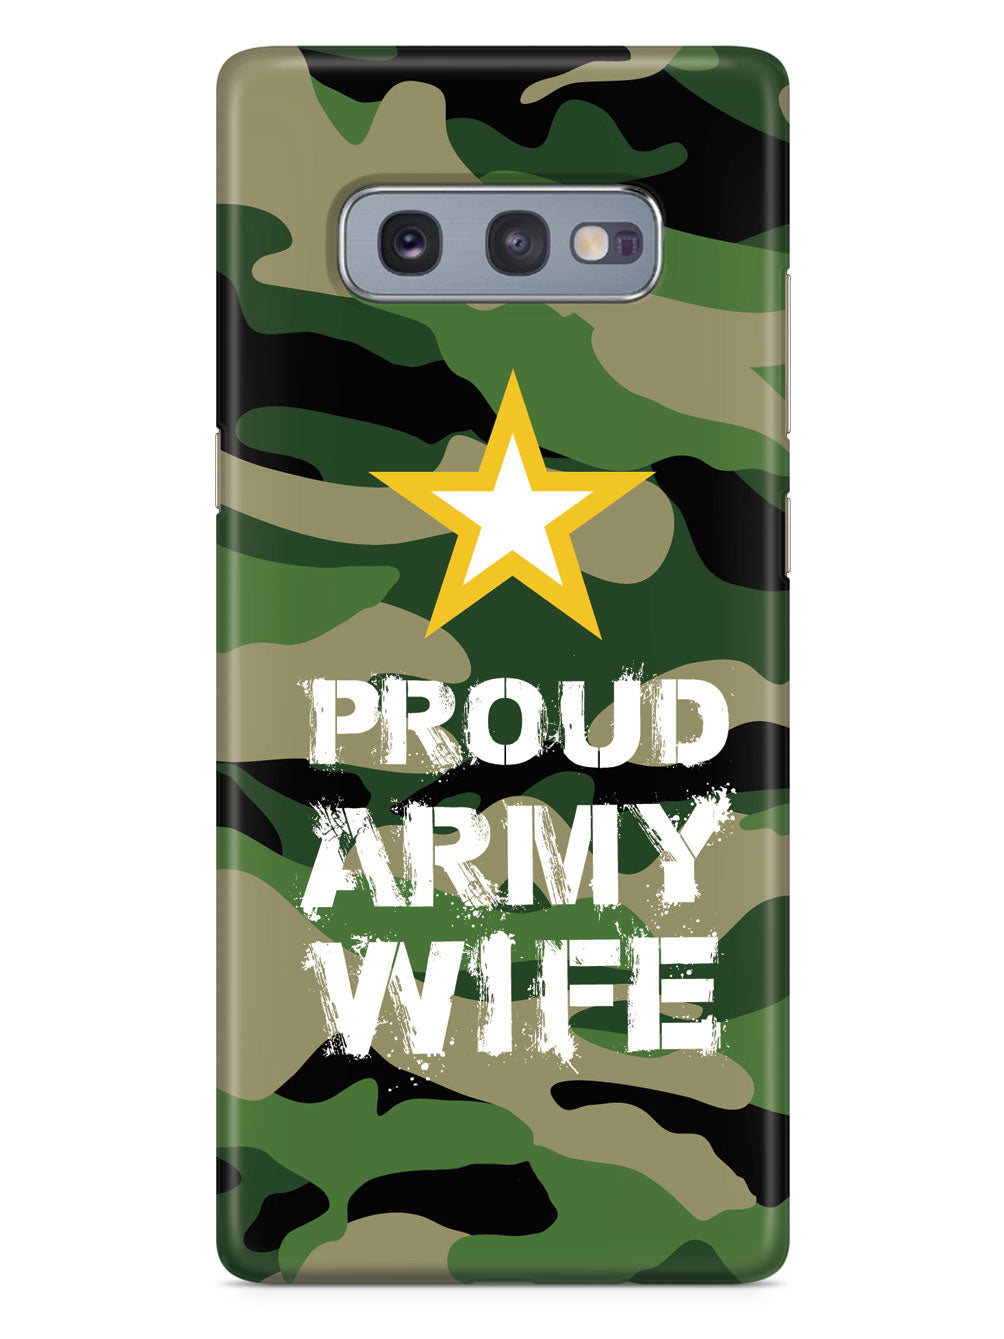 Proud Army Wife Case